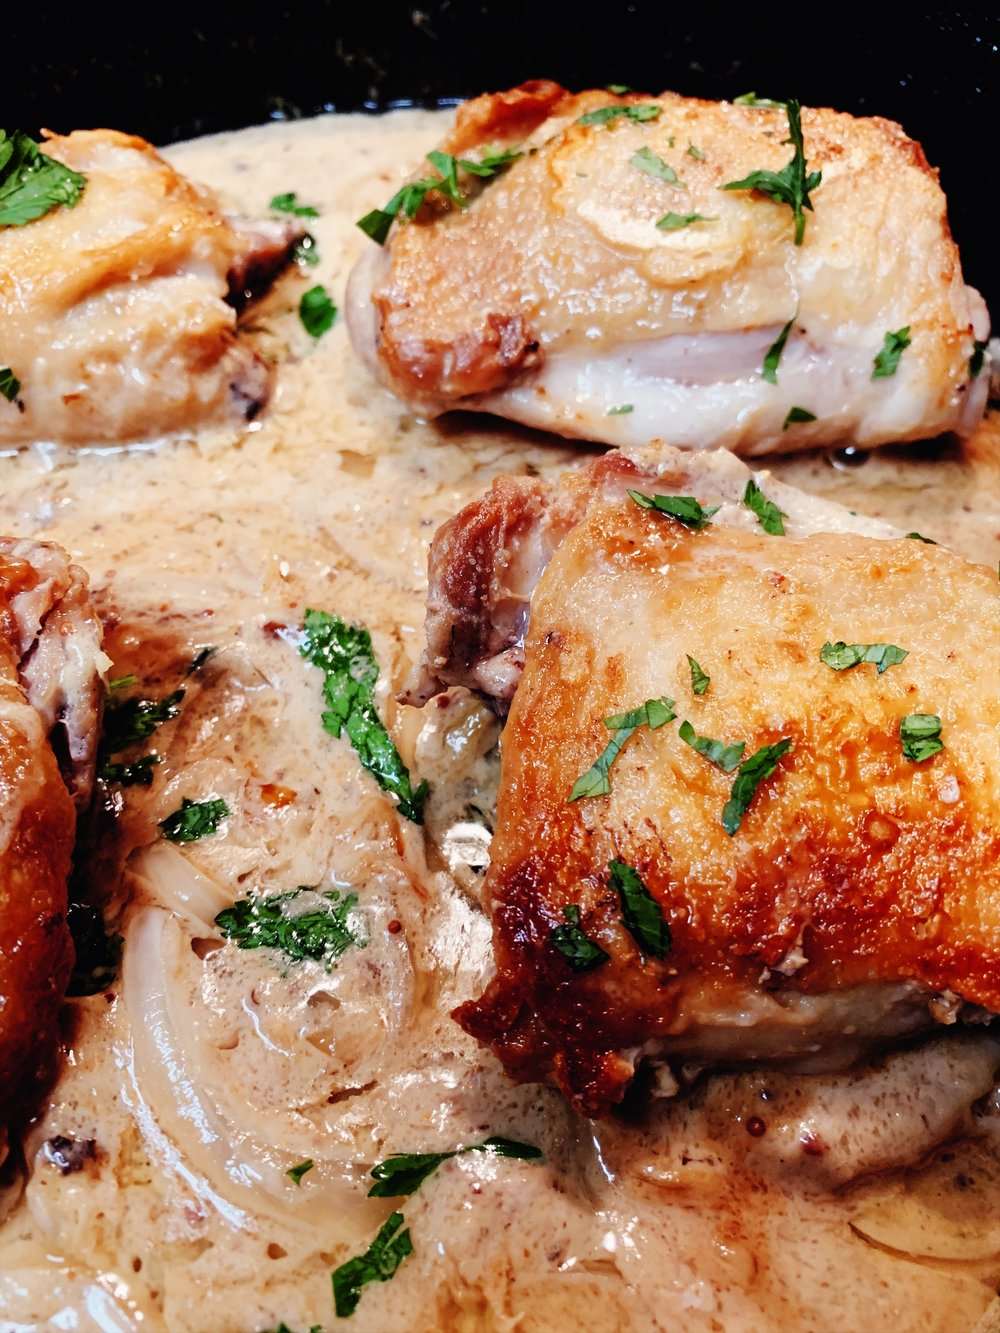 Chicken Thighs with Creamy Mustard Sauce cooked by Krissy, recipe by Ina Garten